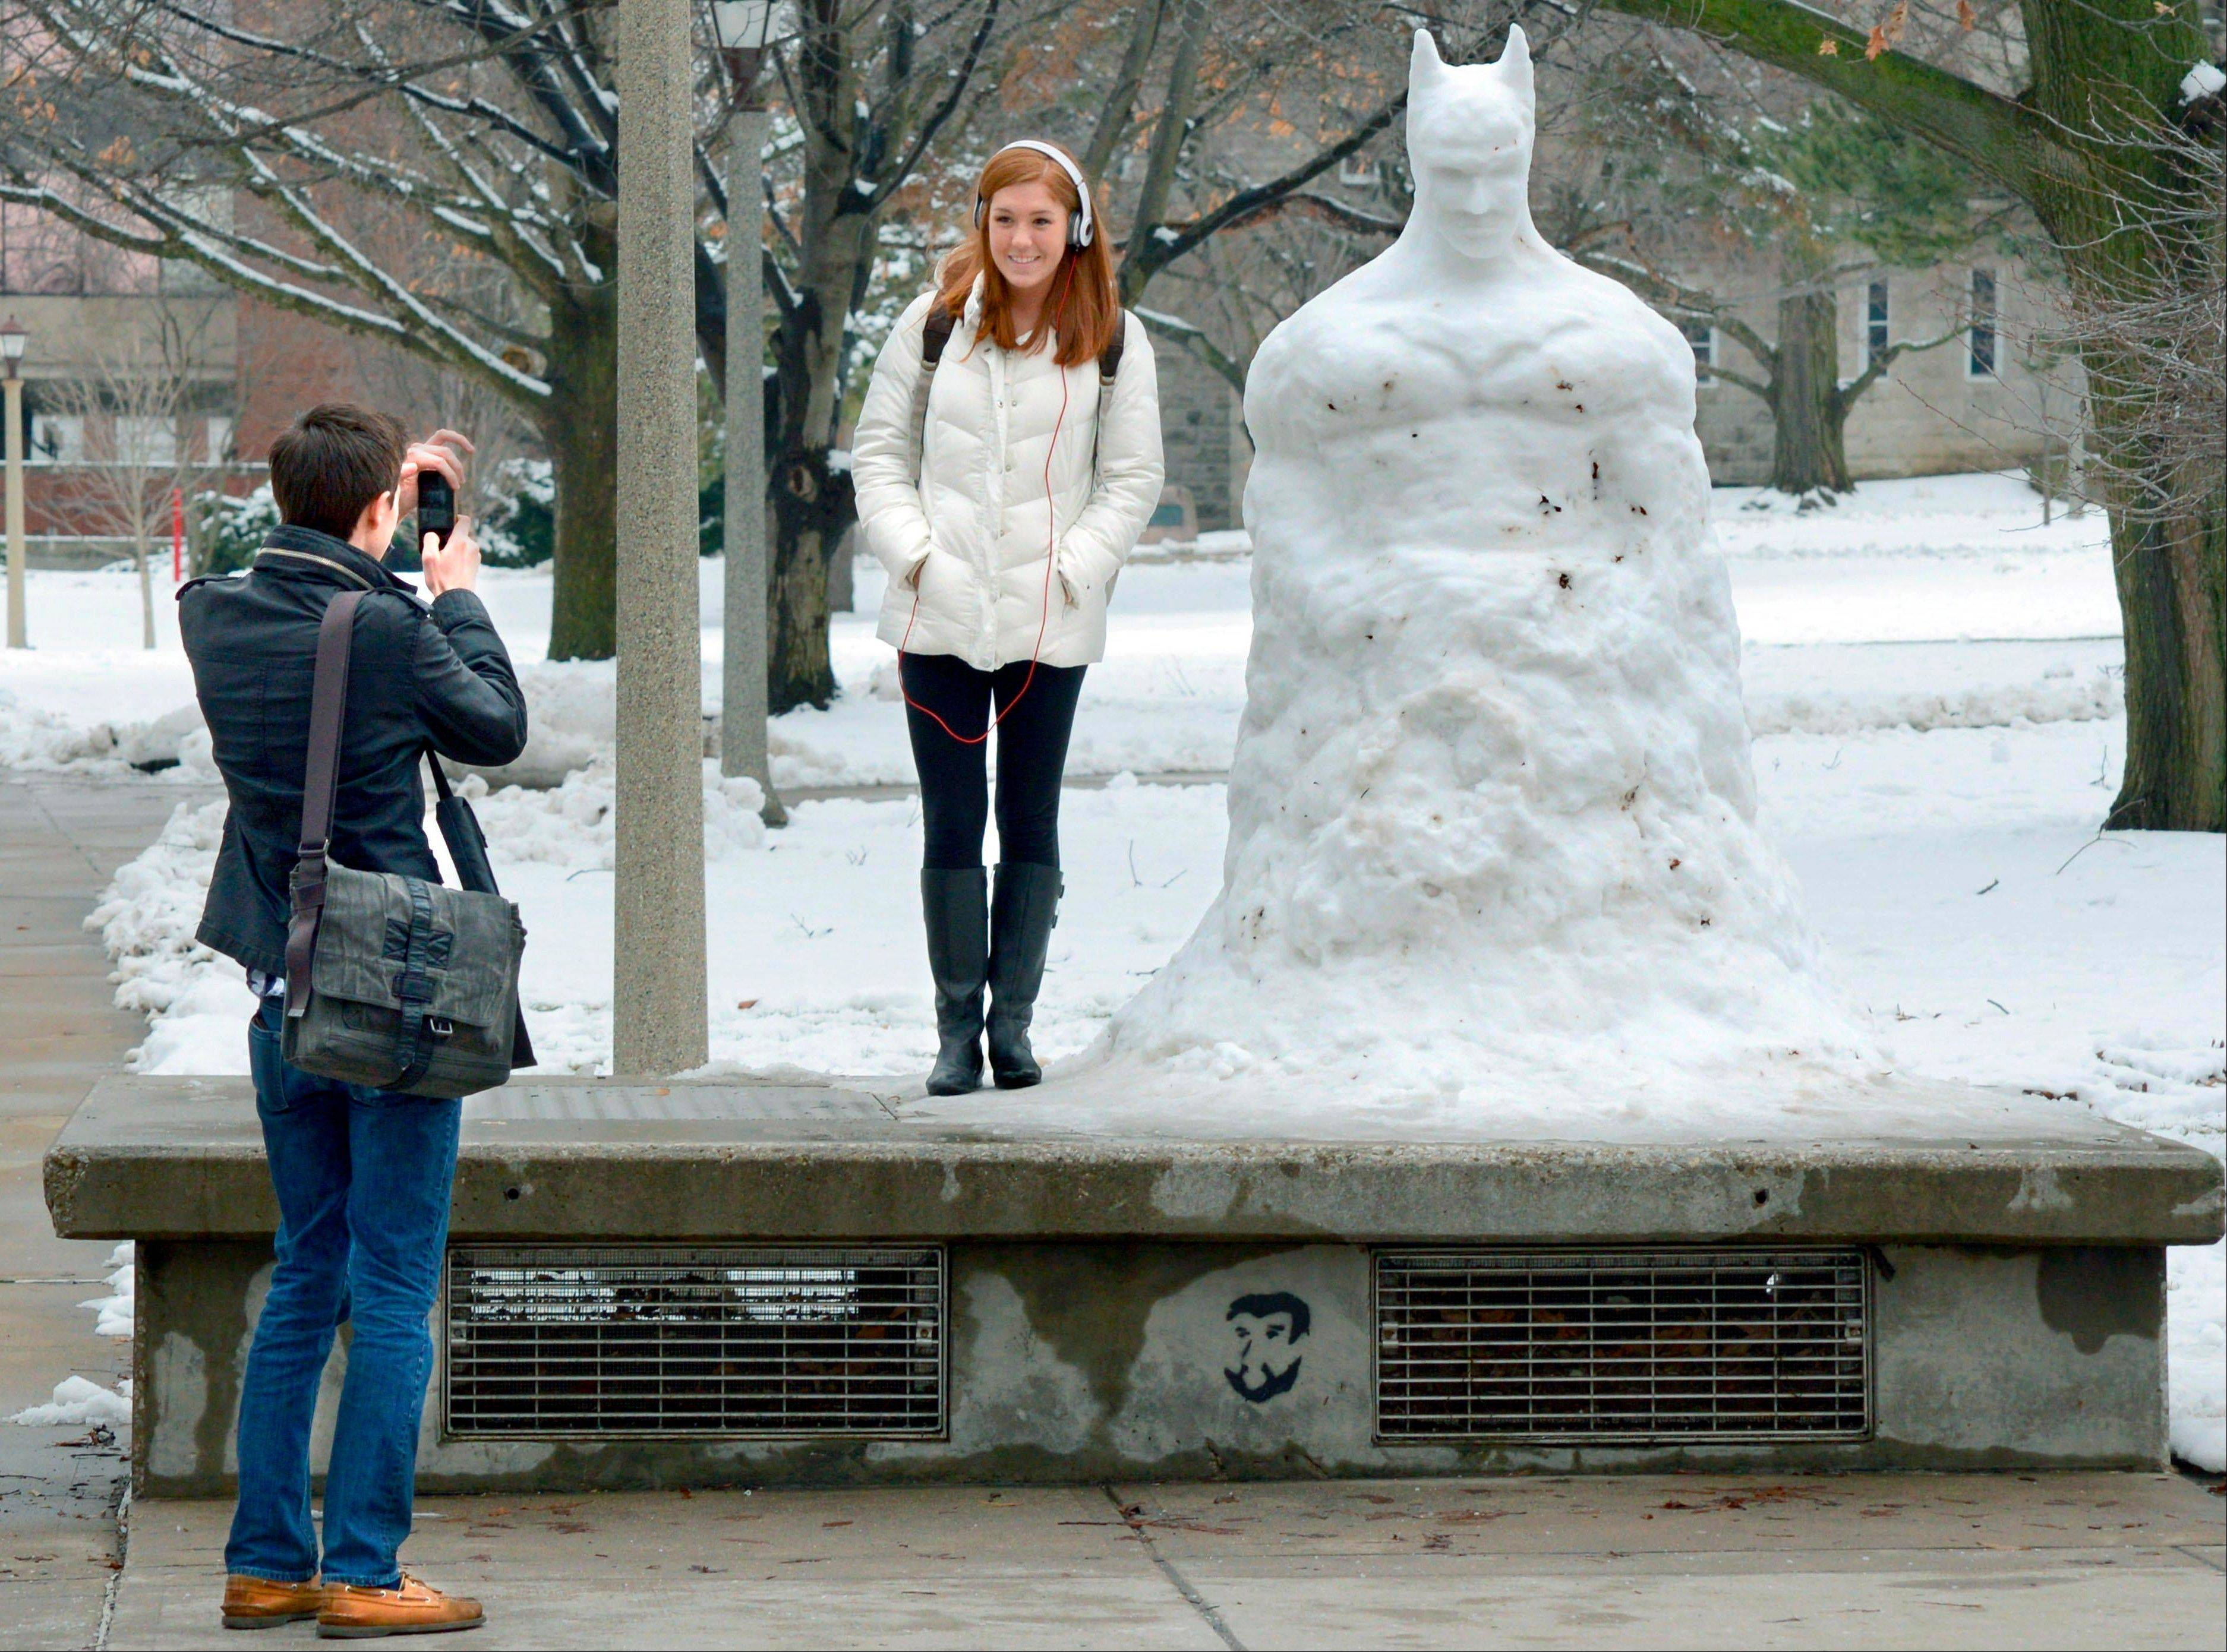 Jonathon Napiorkowski, of Gurnee, a junior at Illinois State University photographs Anna Templin, a junior from Hagerstown, Indiana, by a large snow sculpture of Batman that has been drawing a large following on the ISU quadrangle in Normal. The sculpture was created by art major Anthony LaGiglia using a plastic dining hall knife.